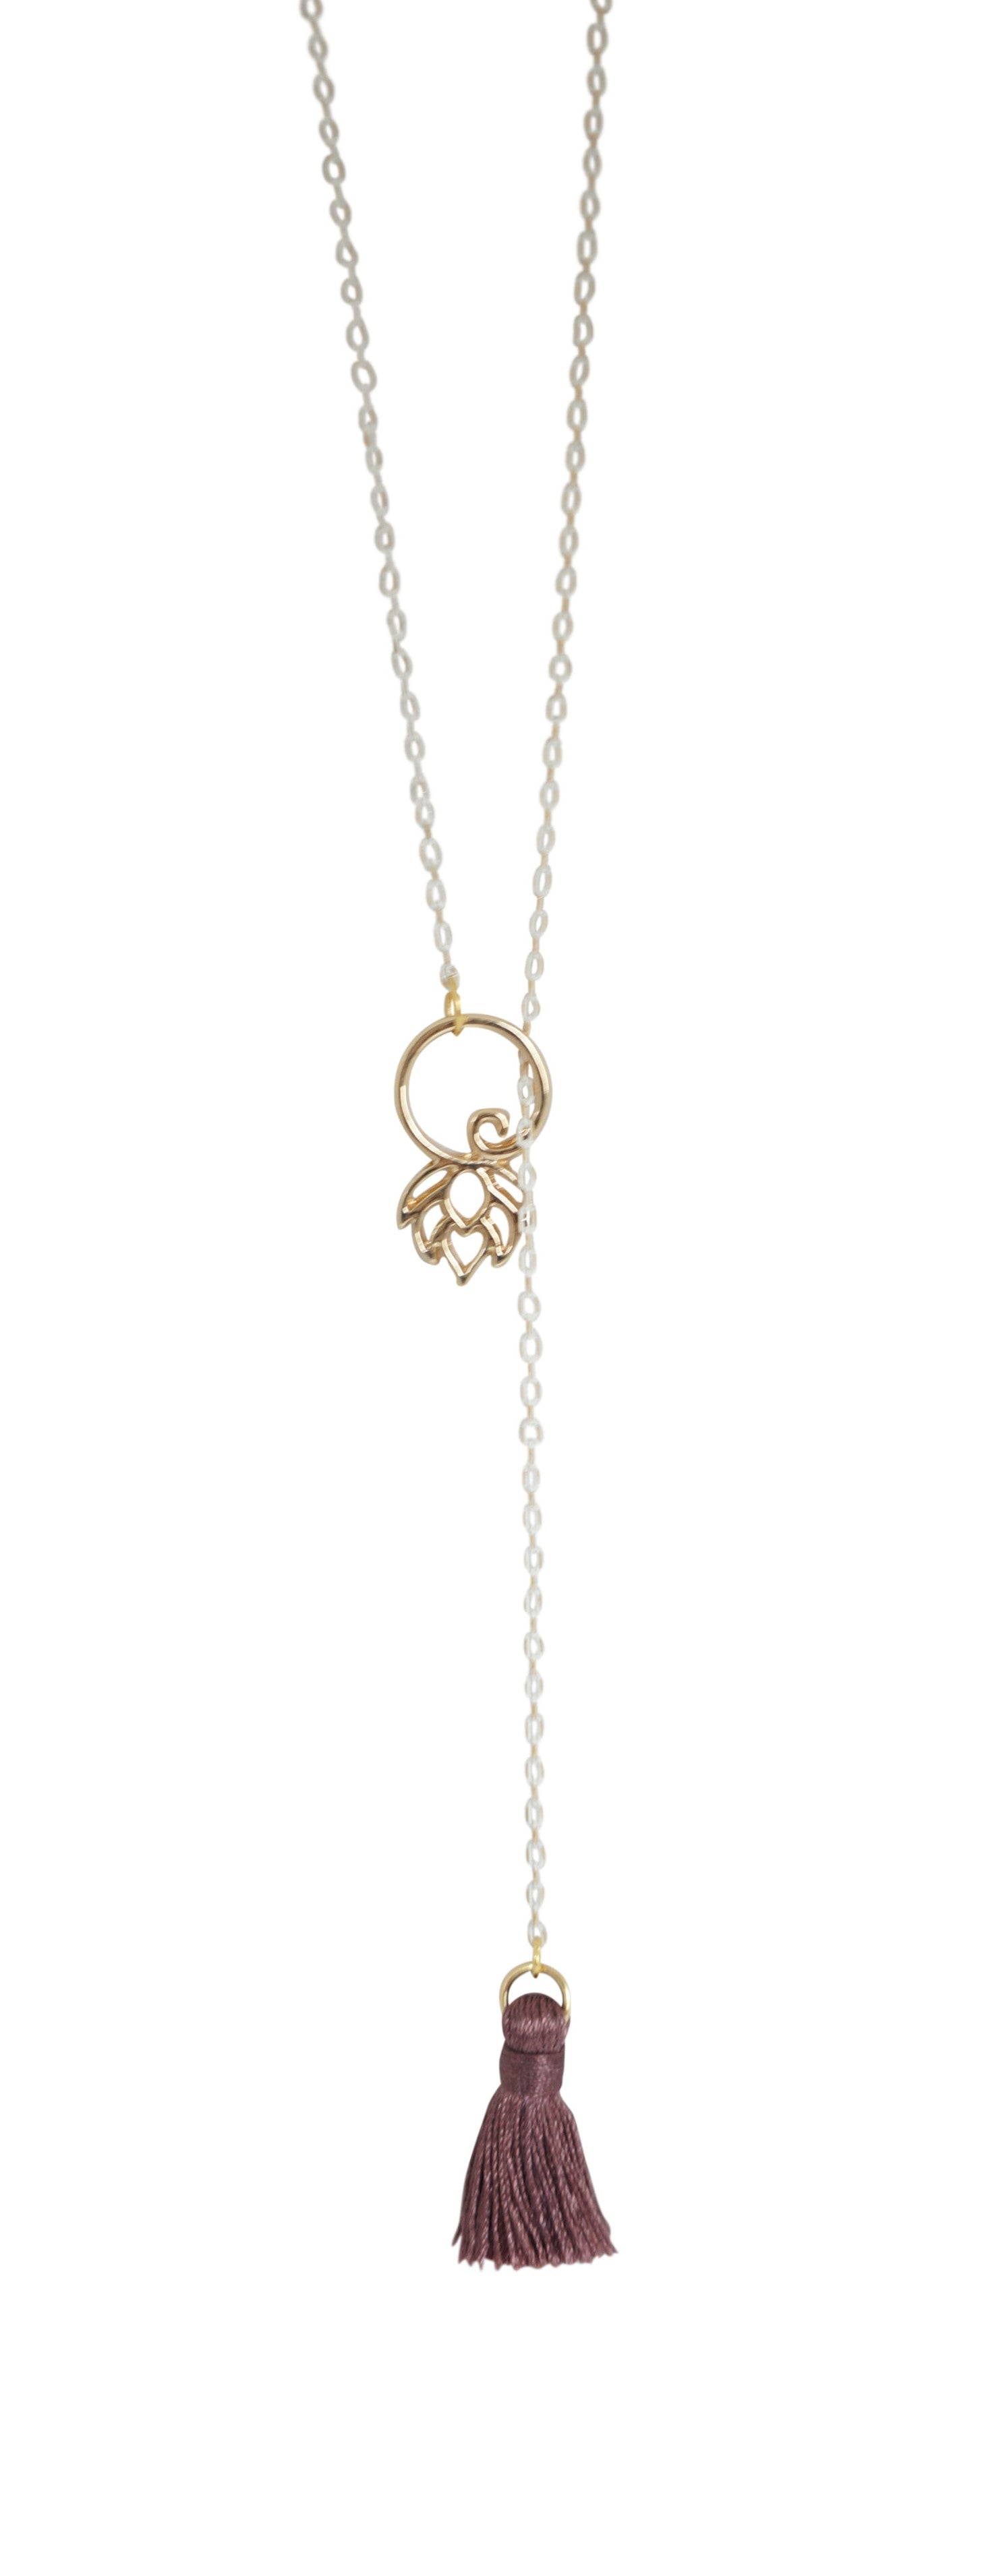 Lotus Lariat Necklace - Carolyn Hearn Designs